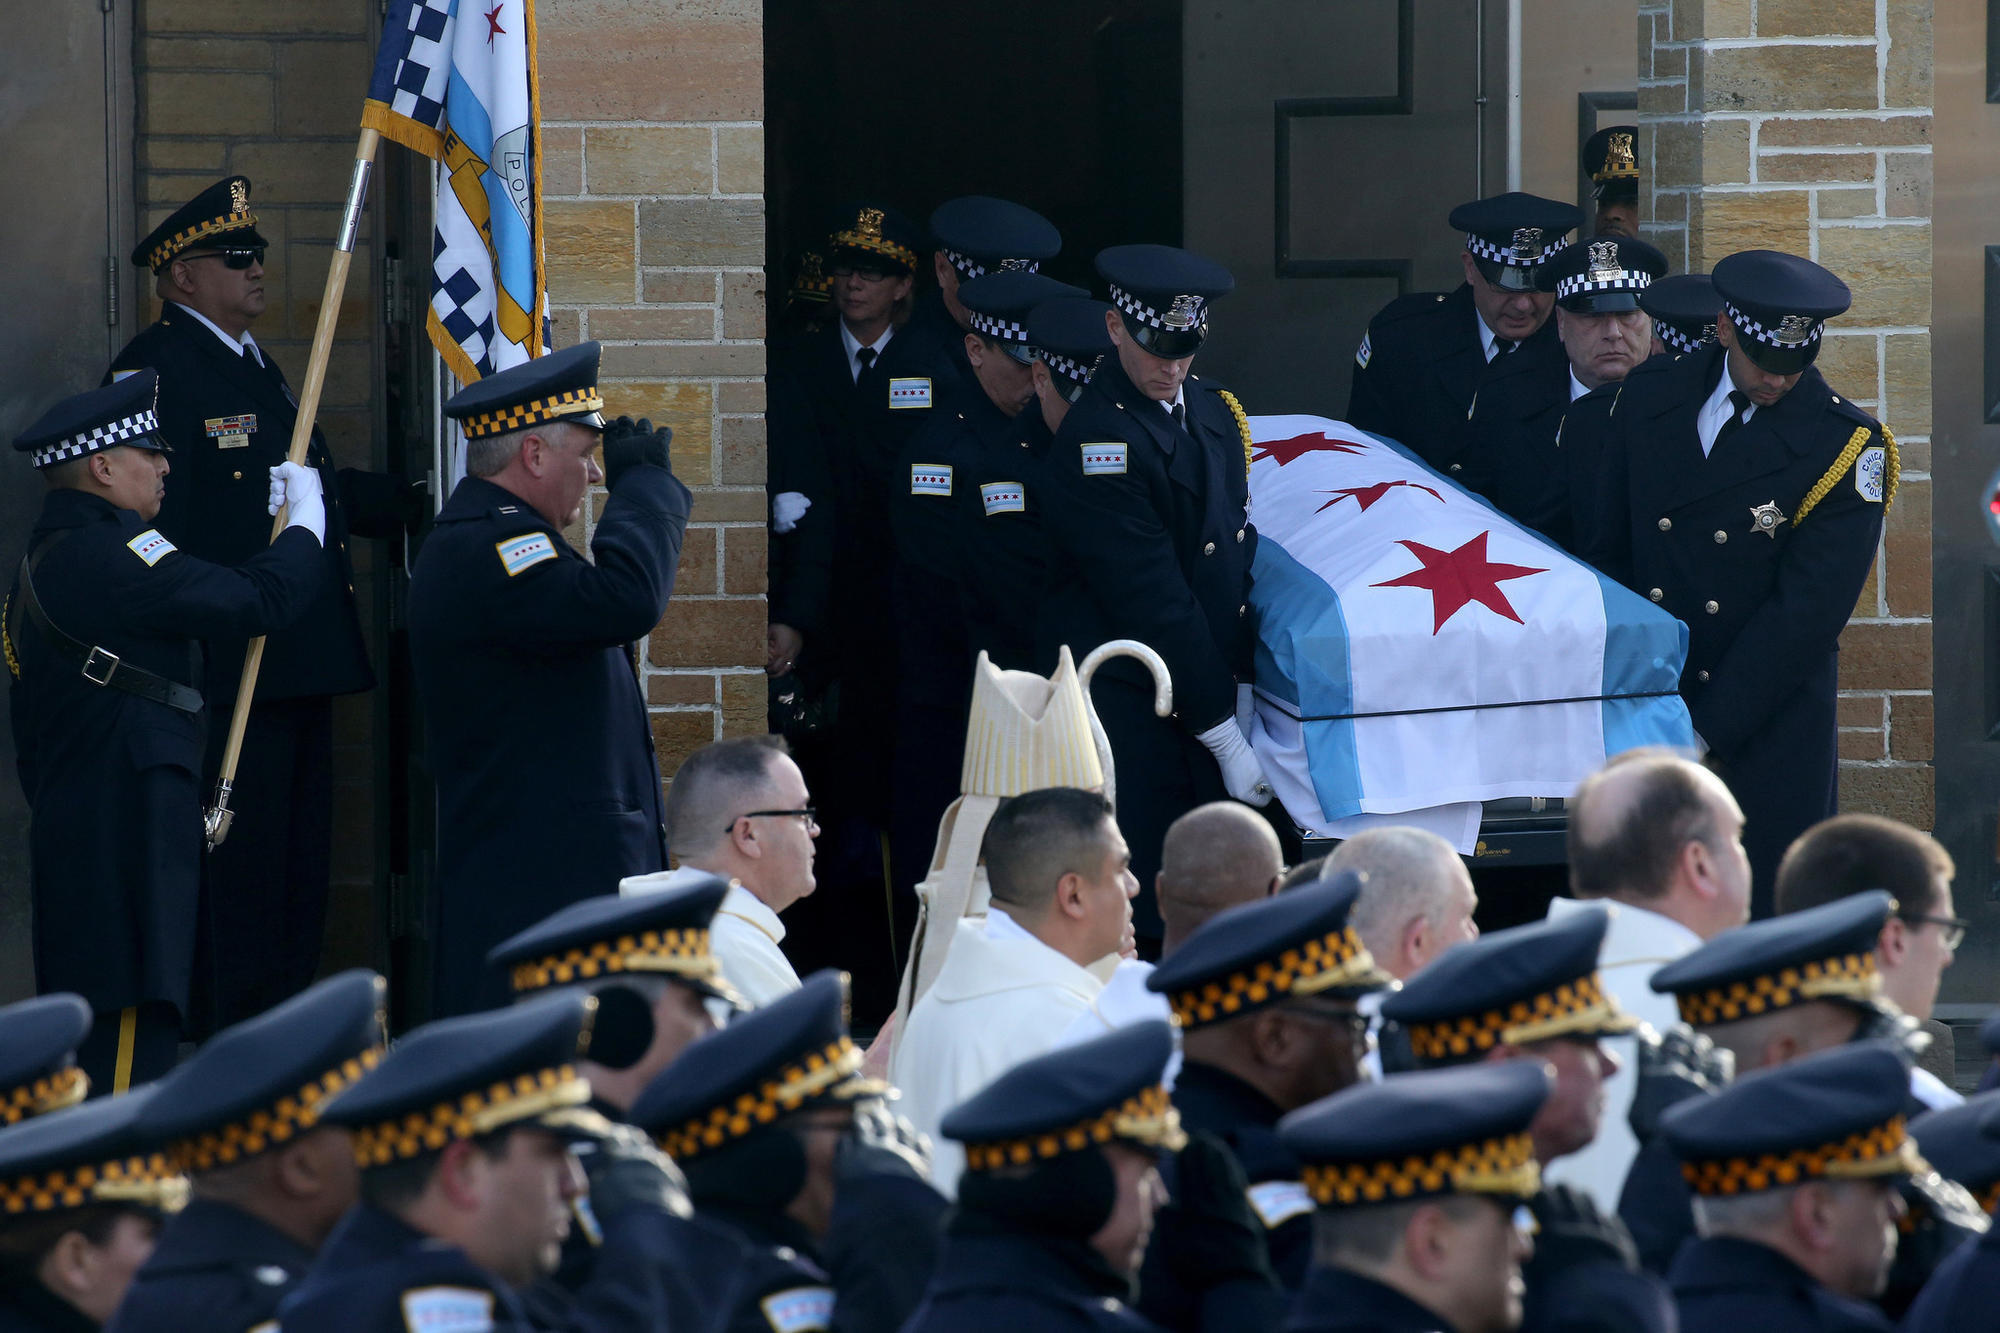 Chicago Police Officer Commits Suicide on New Year's Day